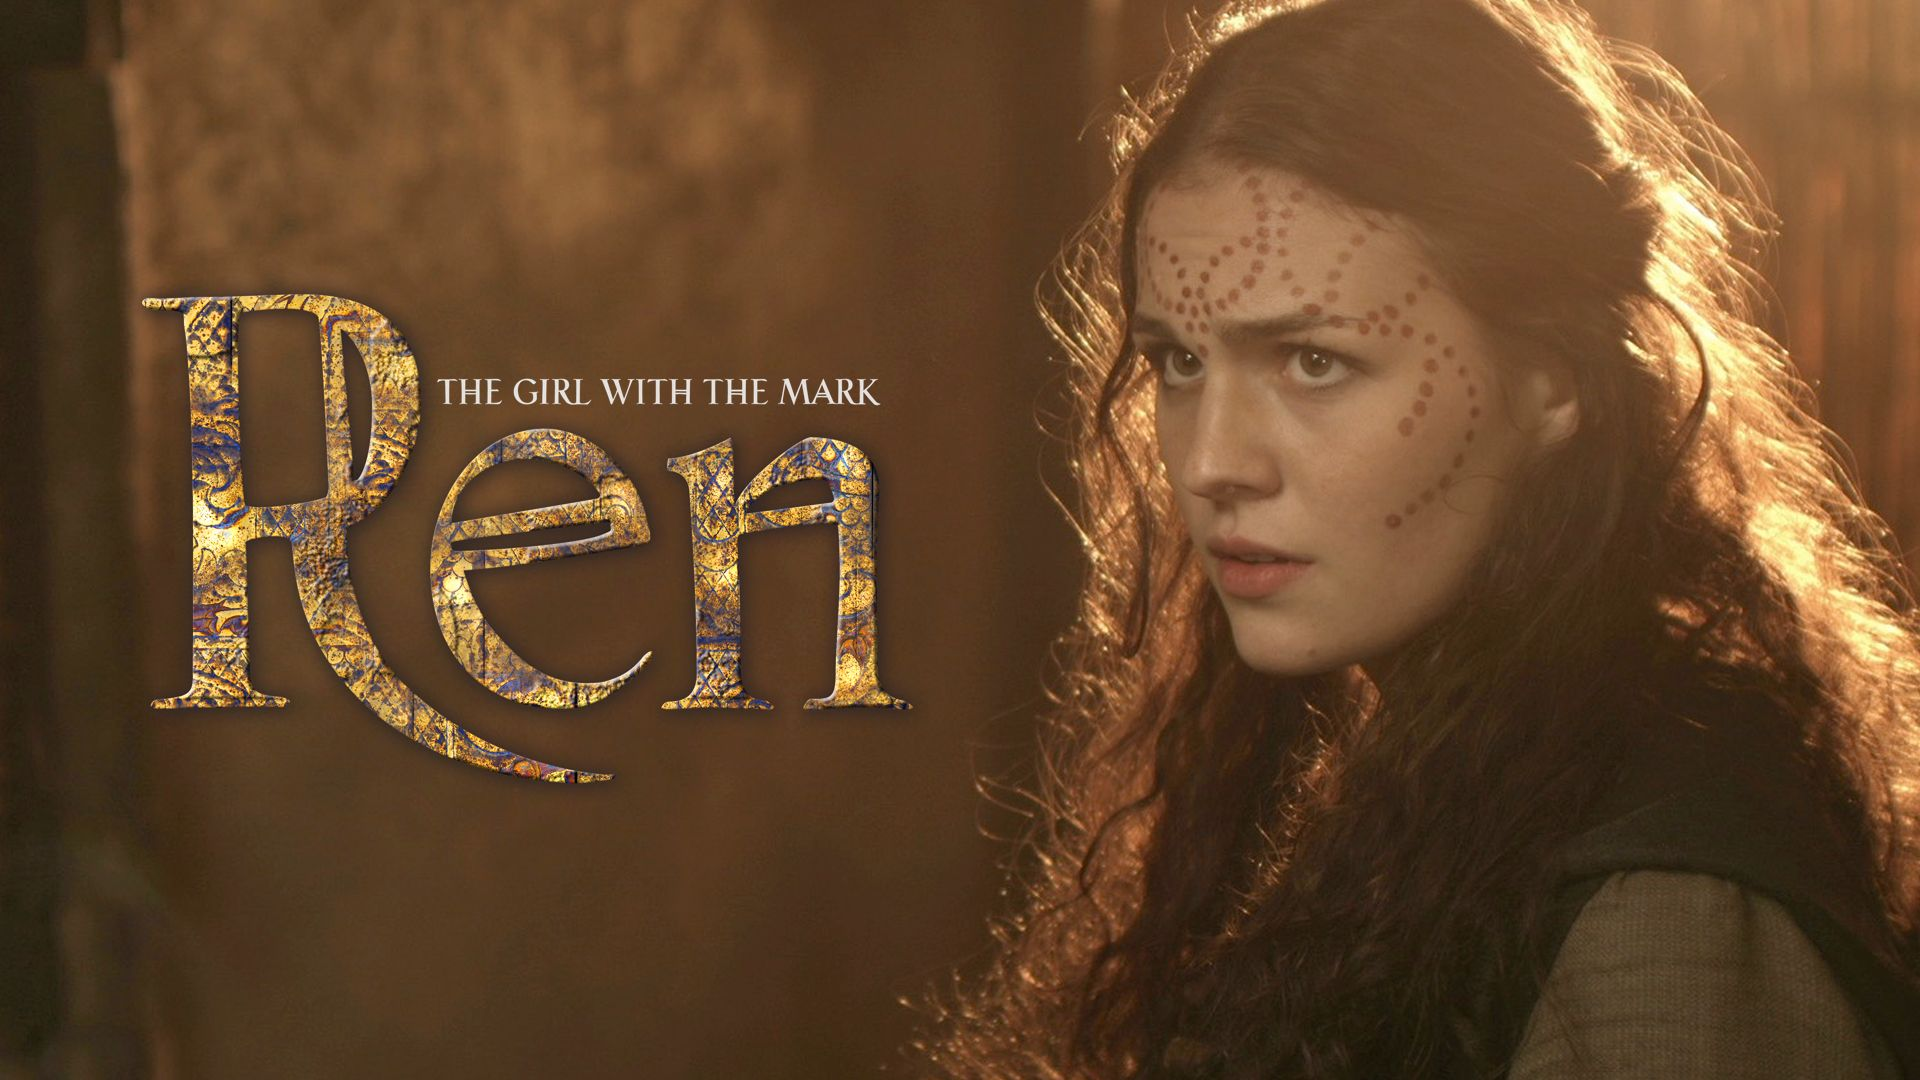 Ren: The Girl With the Mark